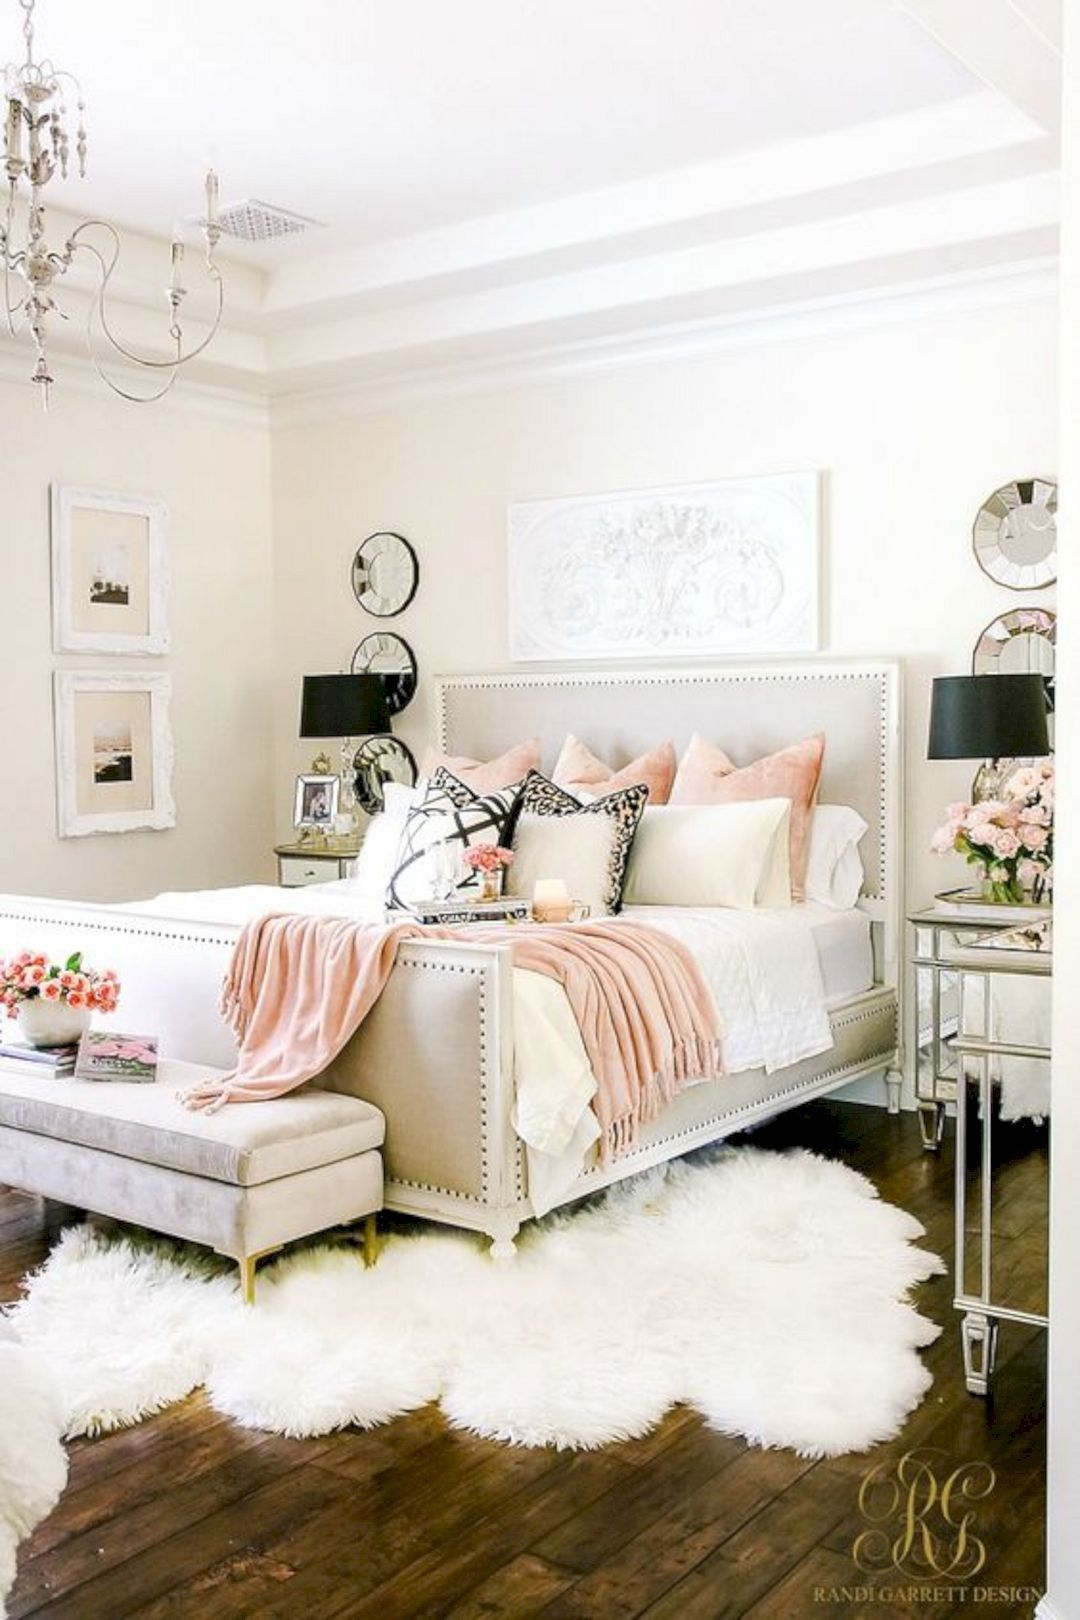 15 Elegant Bedroom Designs Https://www.designlisticle.com/elegant Bedroom  Designs/